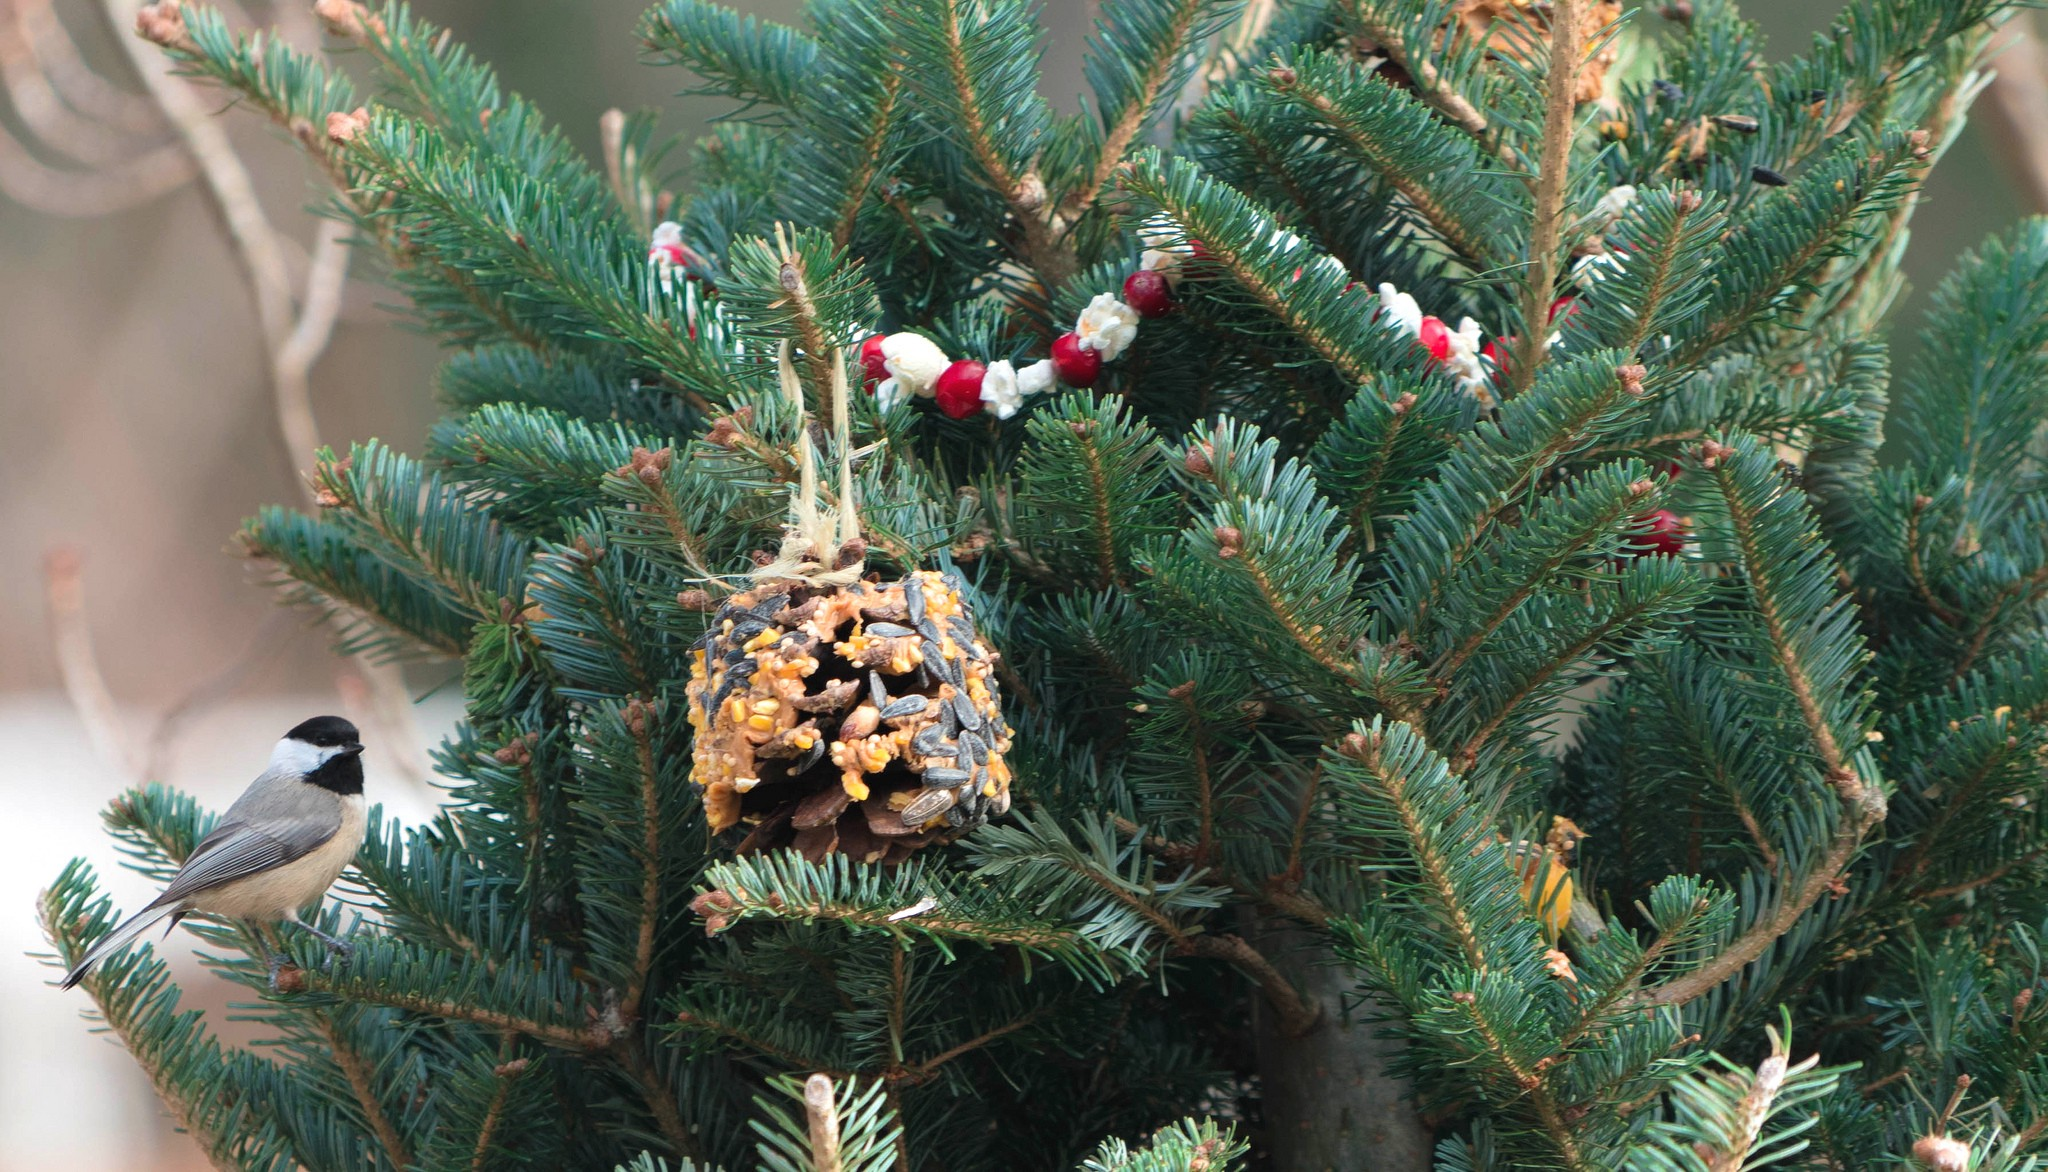 Pine cone with peanut butter and birdseed ornament and popcorn/ cranberry garland